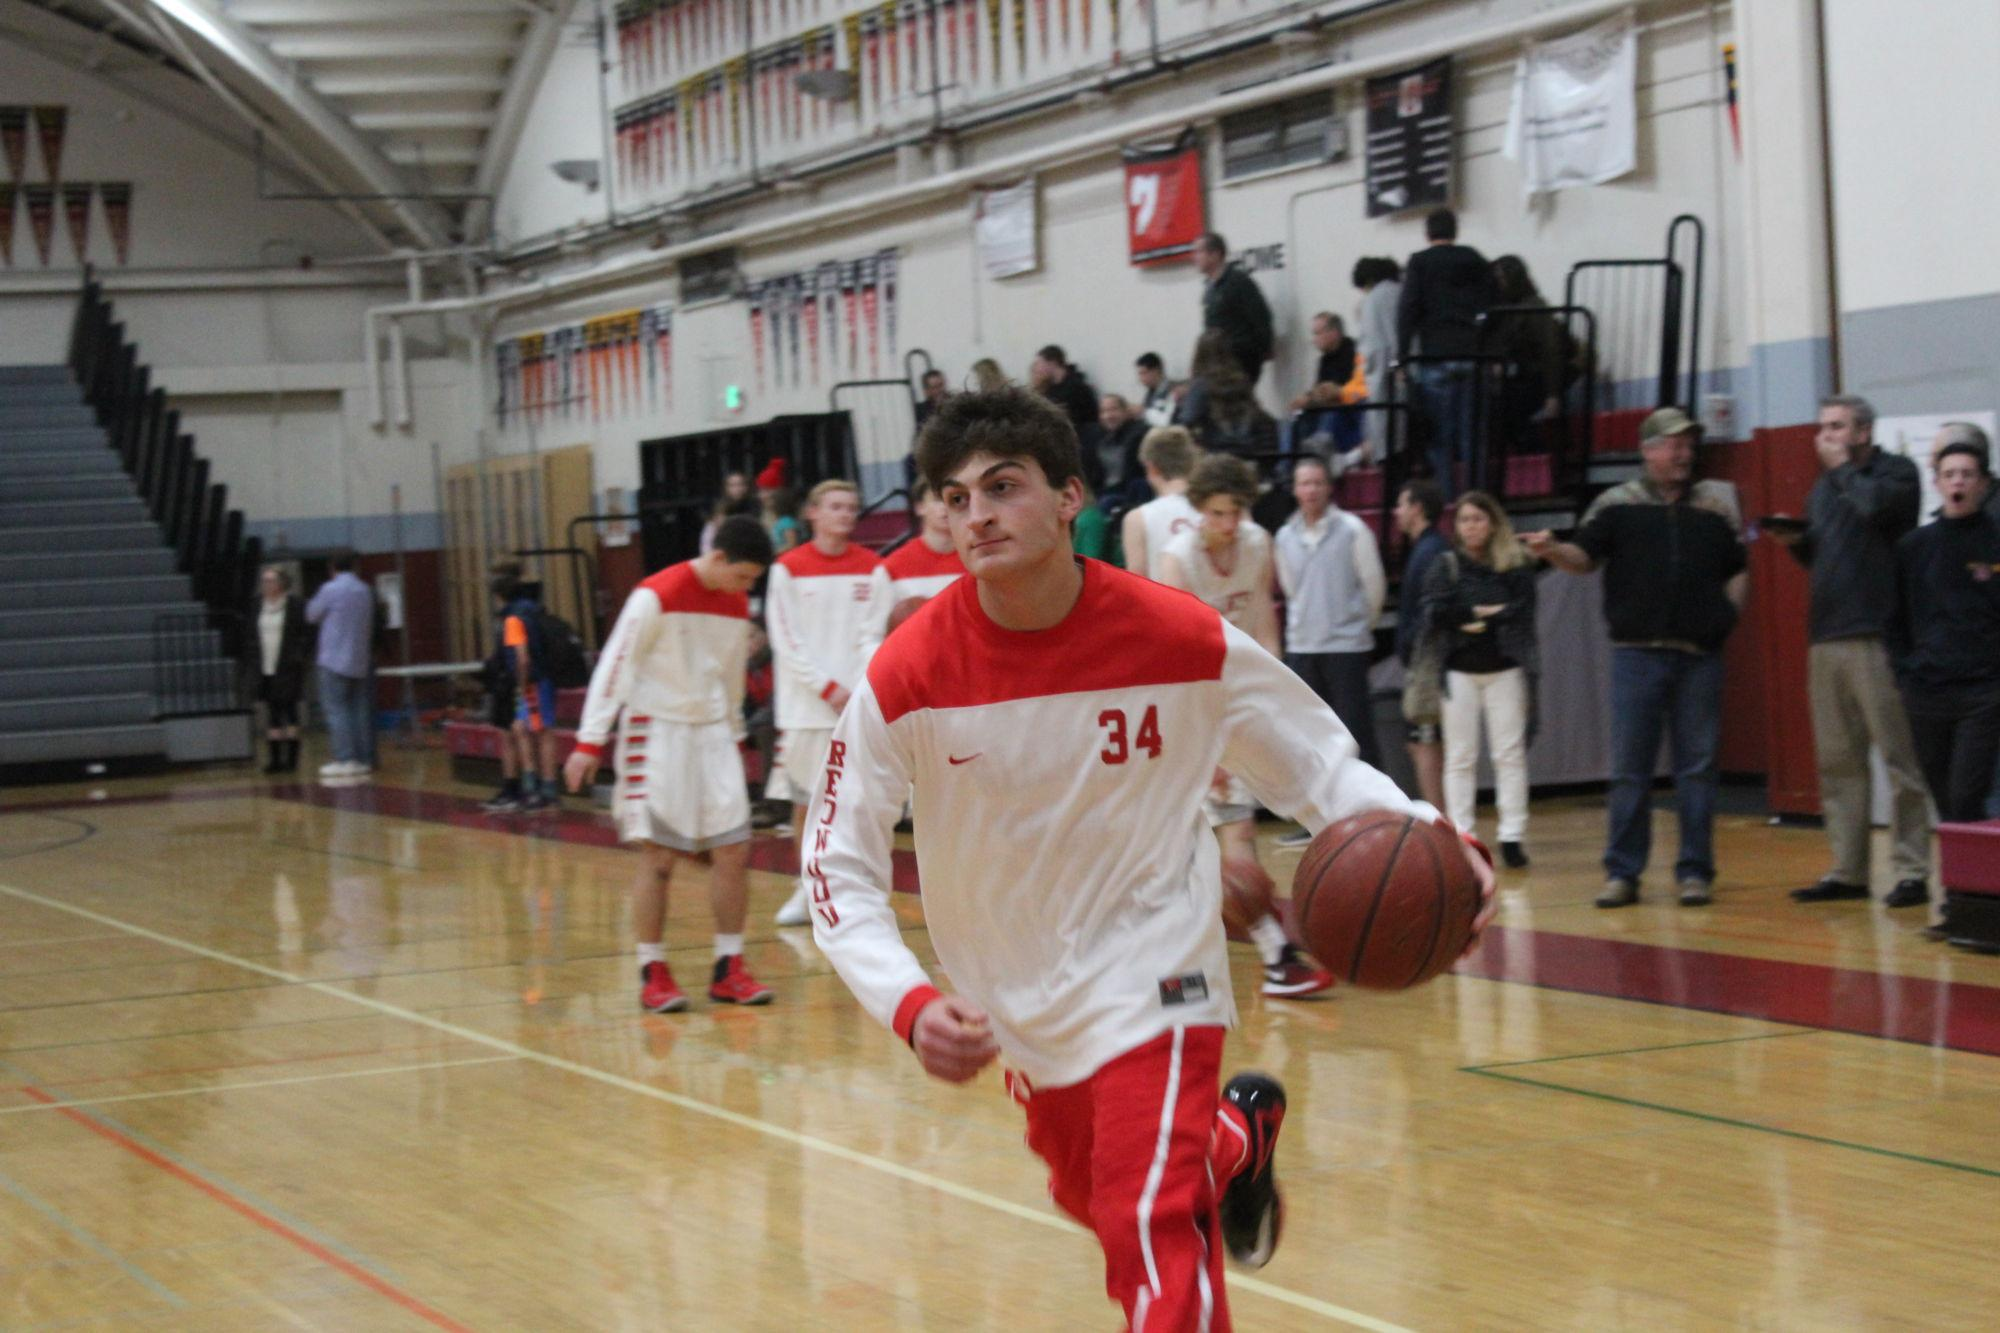 Junior Matt Mulcahy warms up before the game